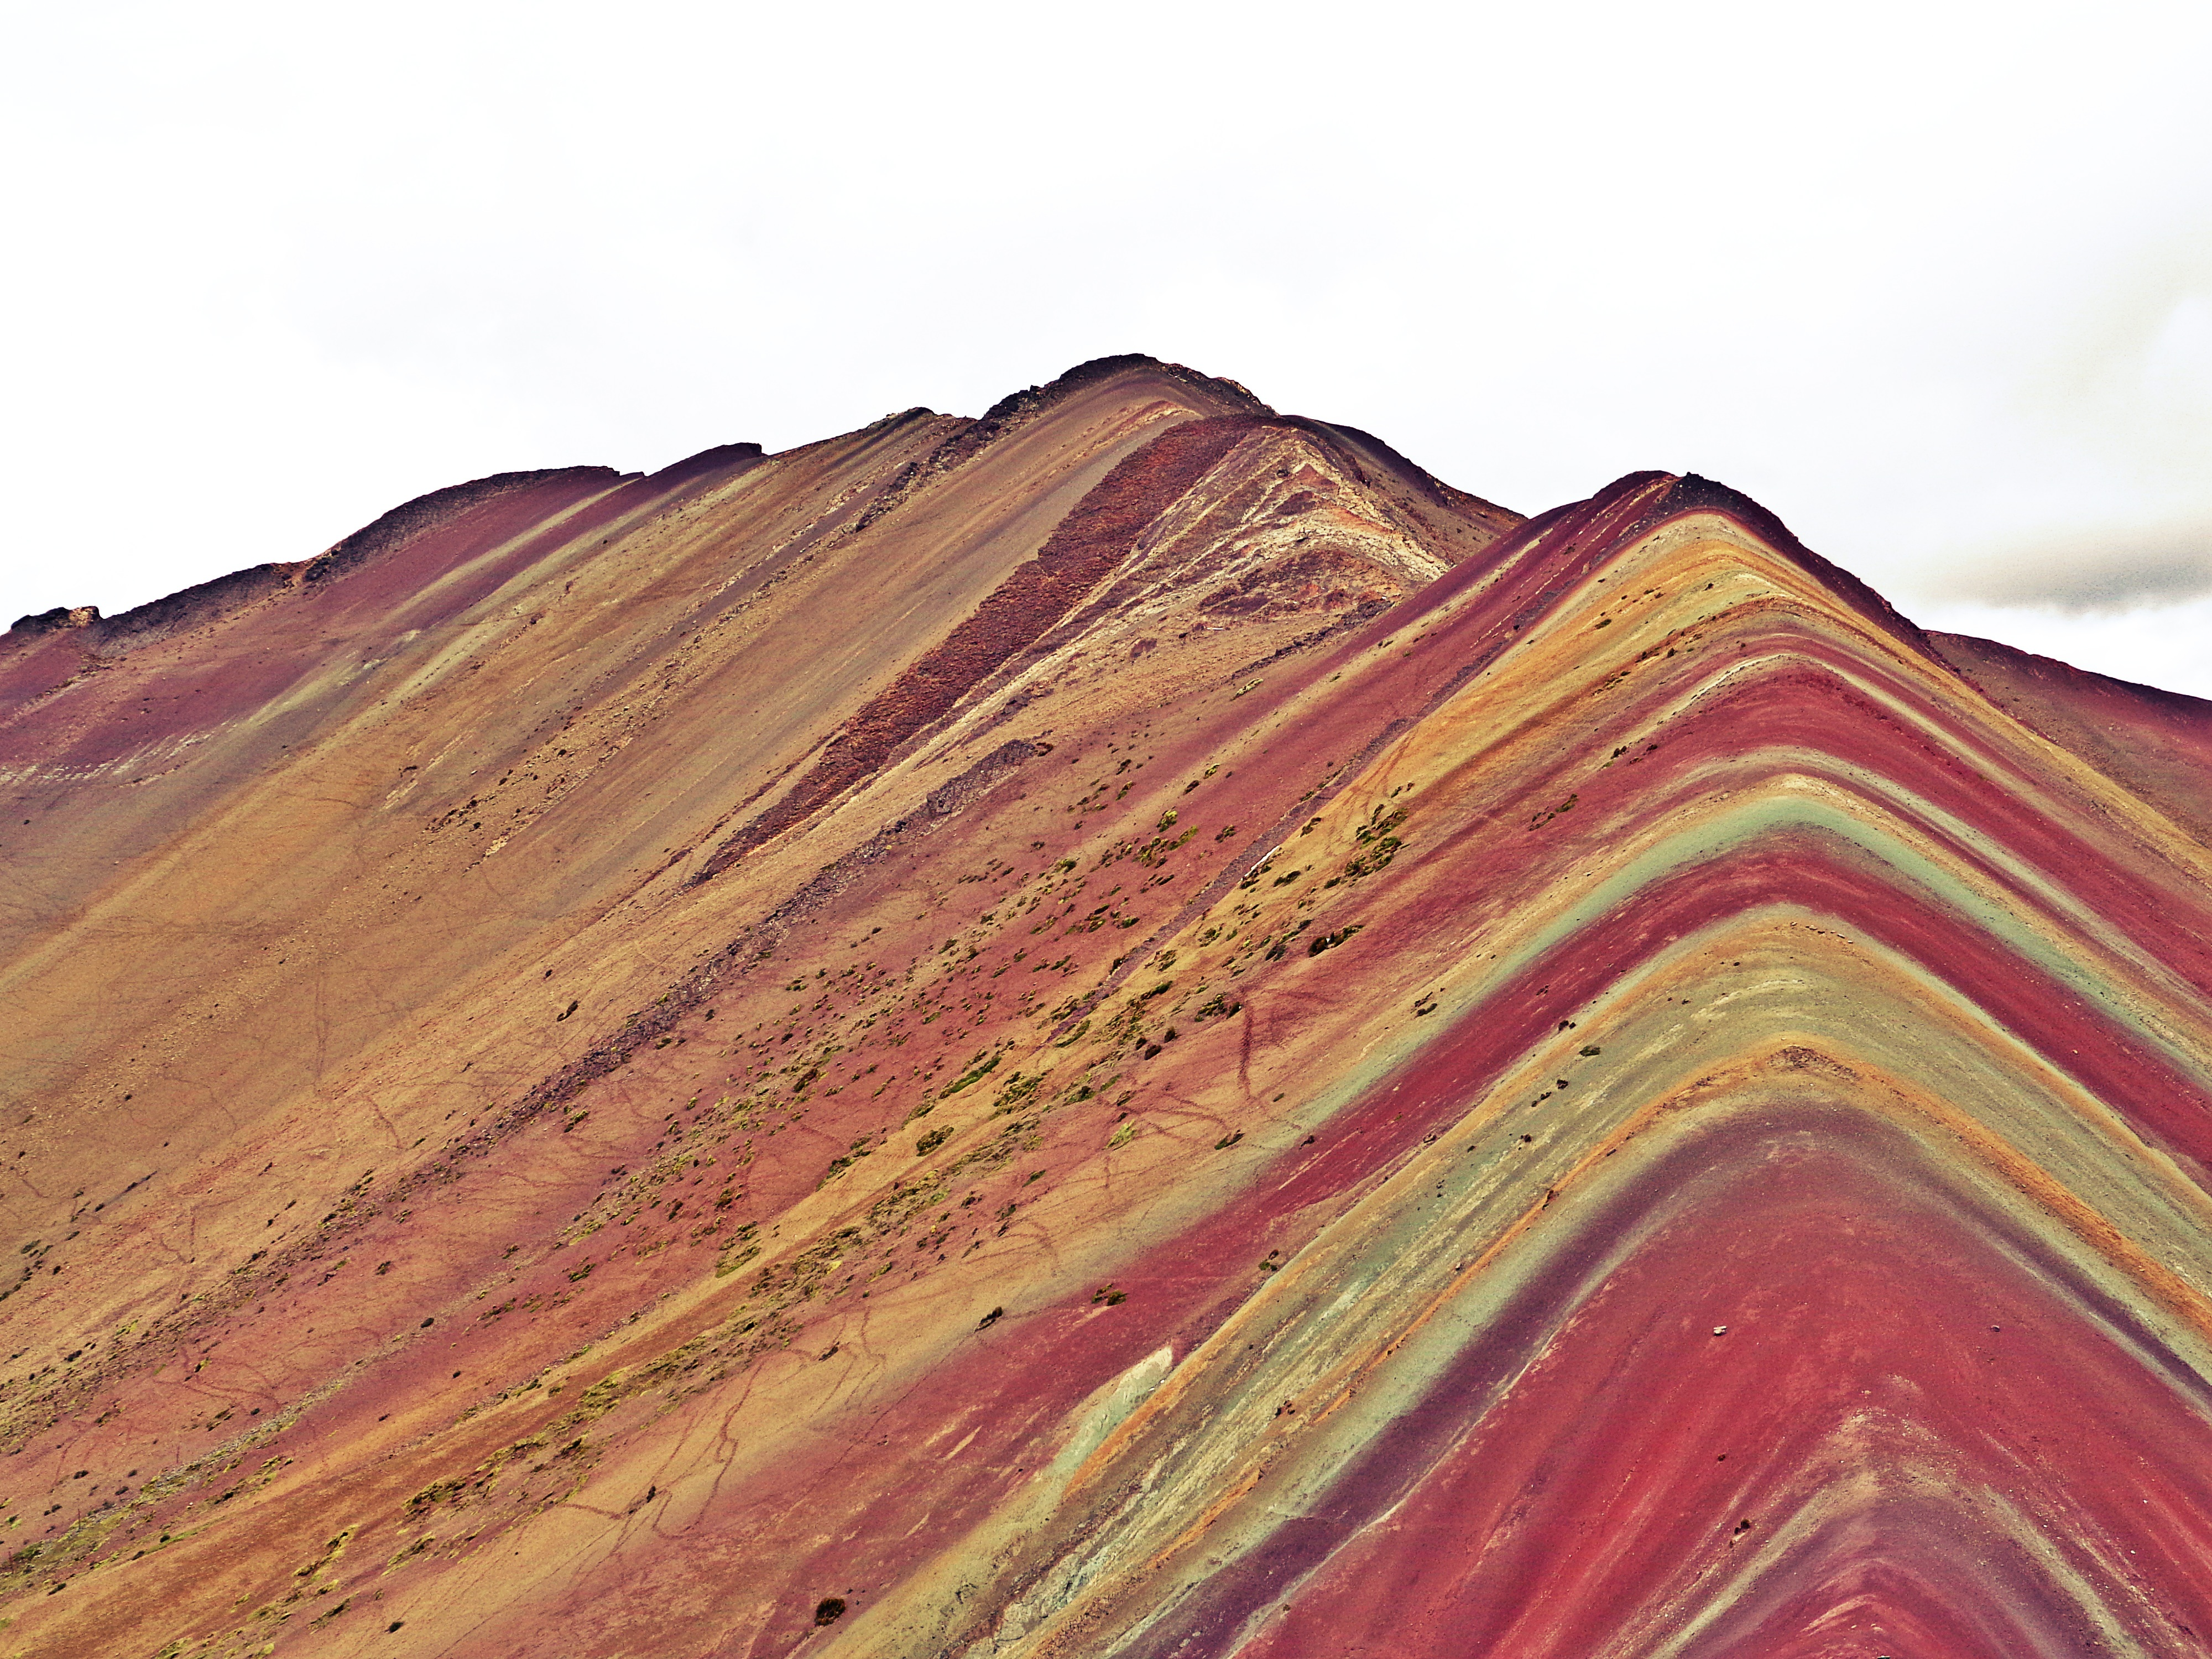 Lock Screen Wallpaper Iphone X Free Stock Photo Of Cusco Peru Rainbow Mountains